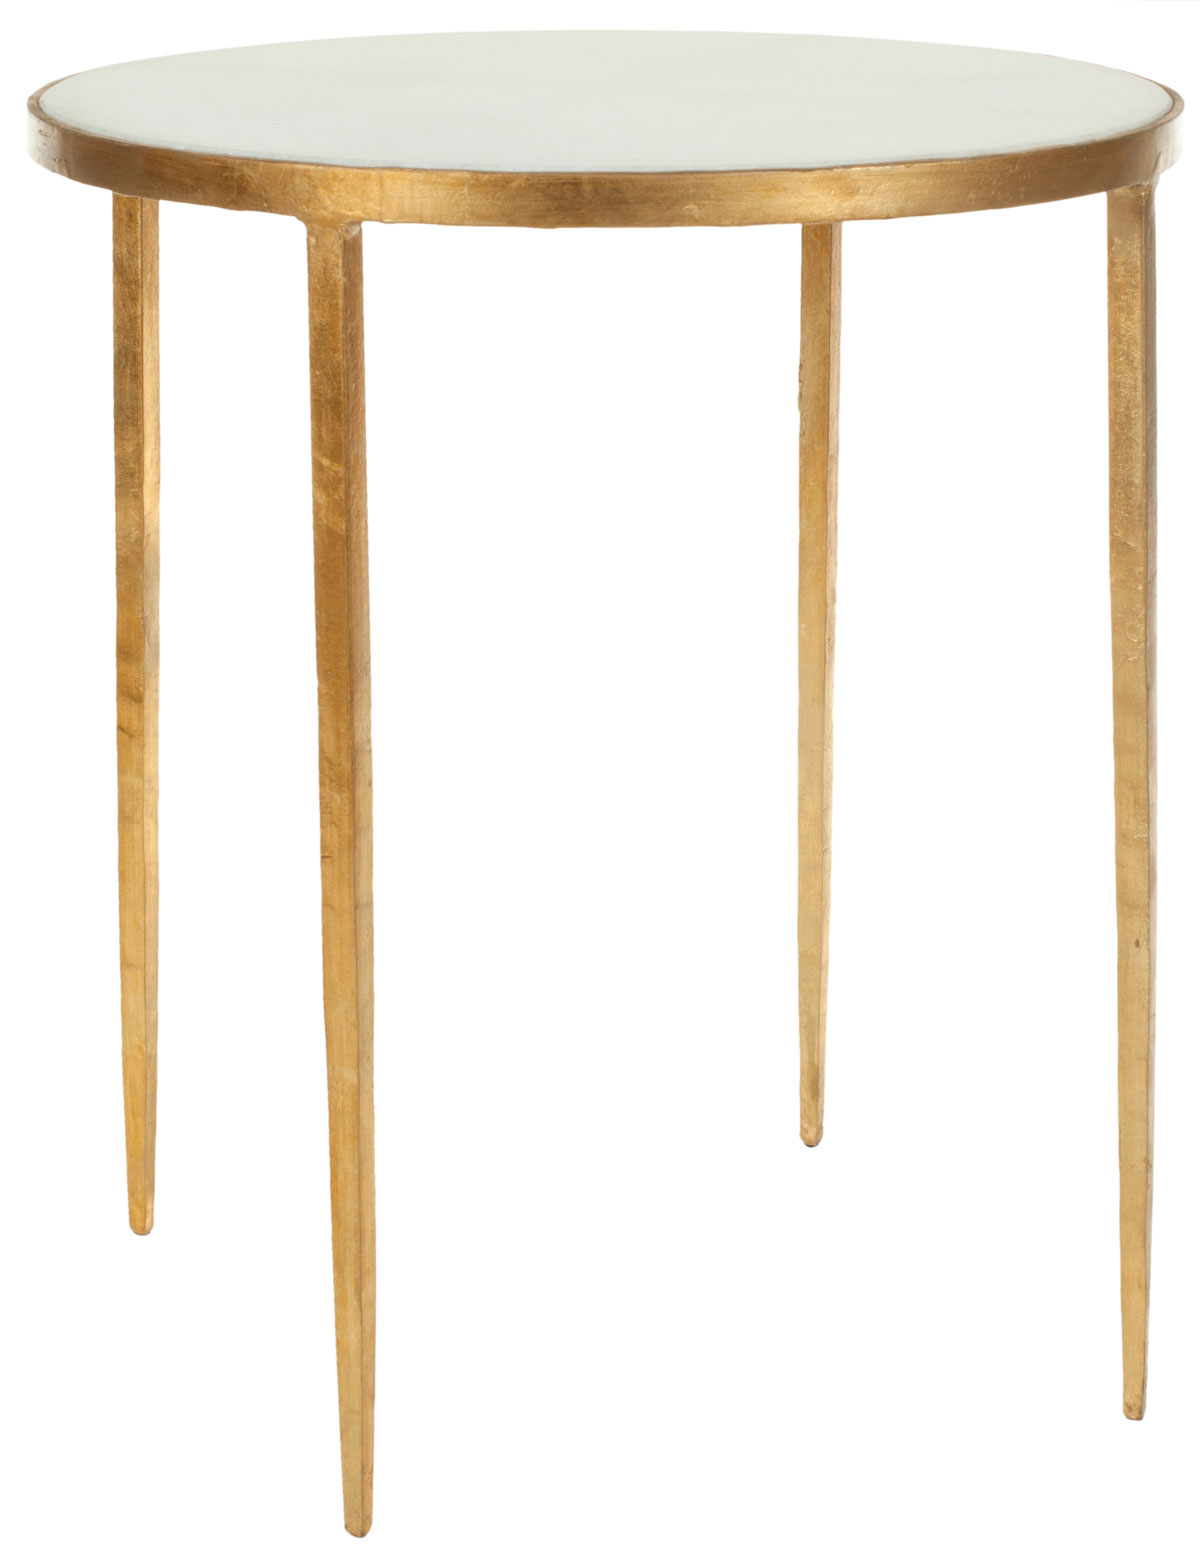 accent tables furniture safavieh front gold dining table share this product extra long runners decorative clocks vintage white percussion bell kit ikea book shelves cabinets with